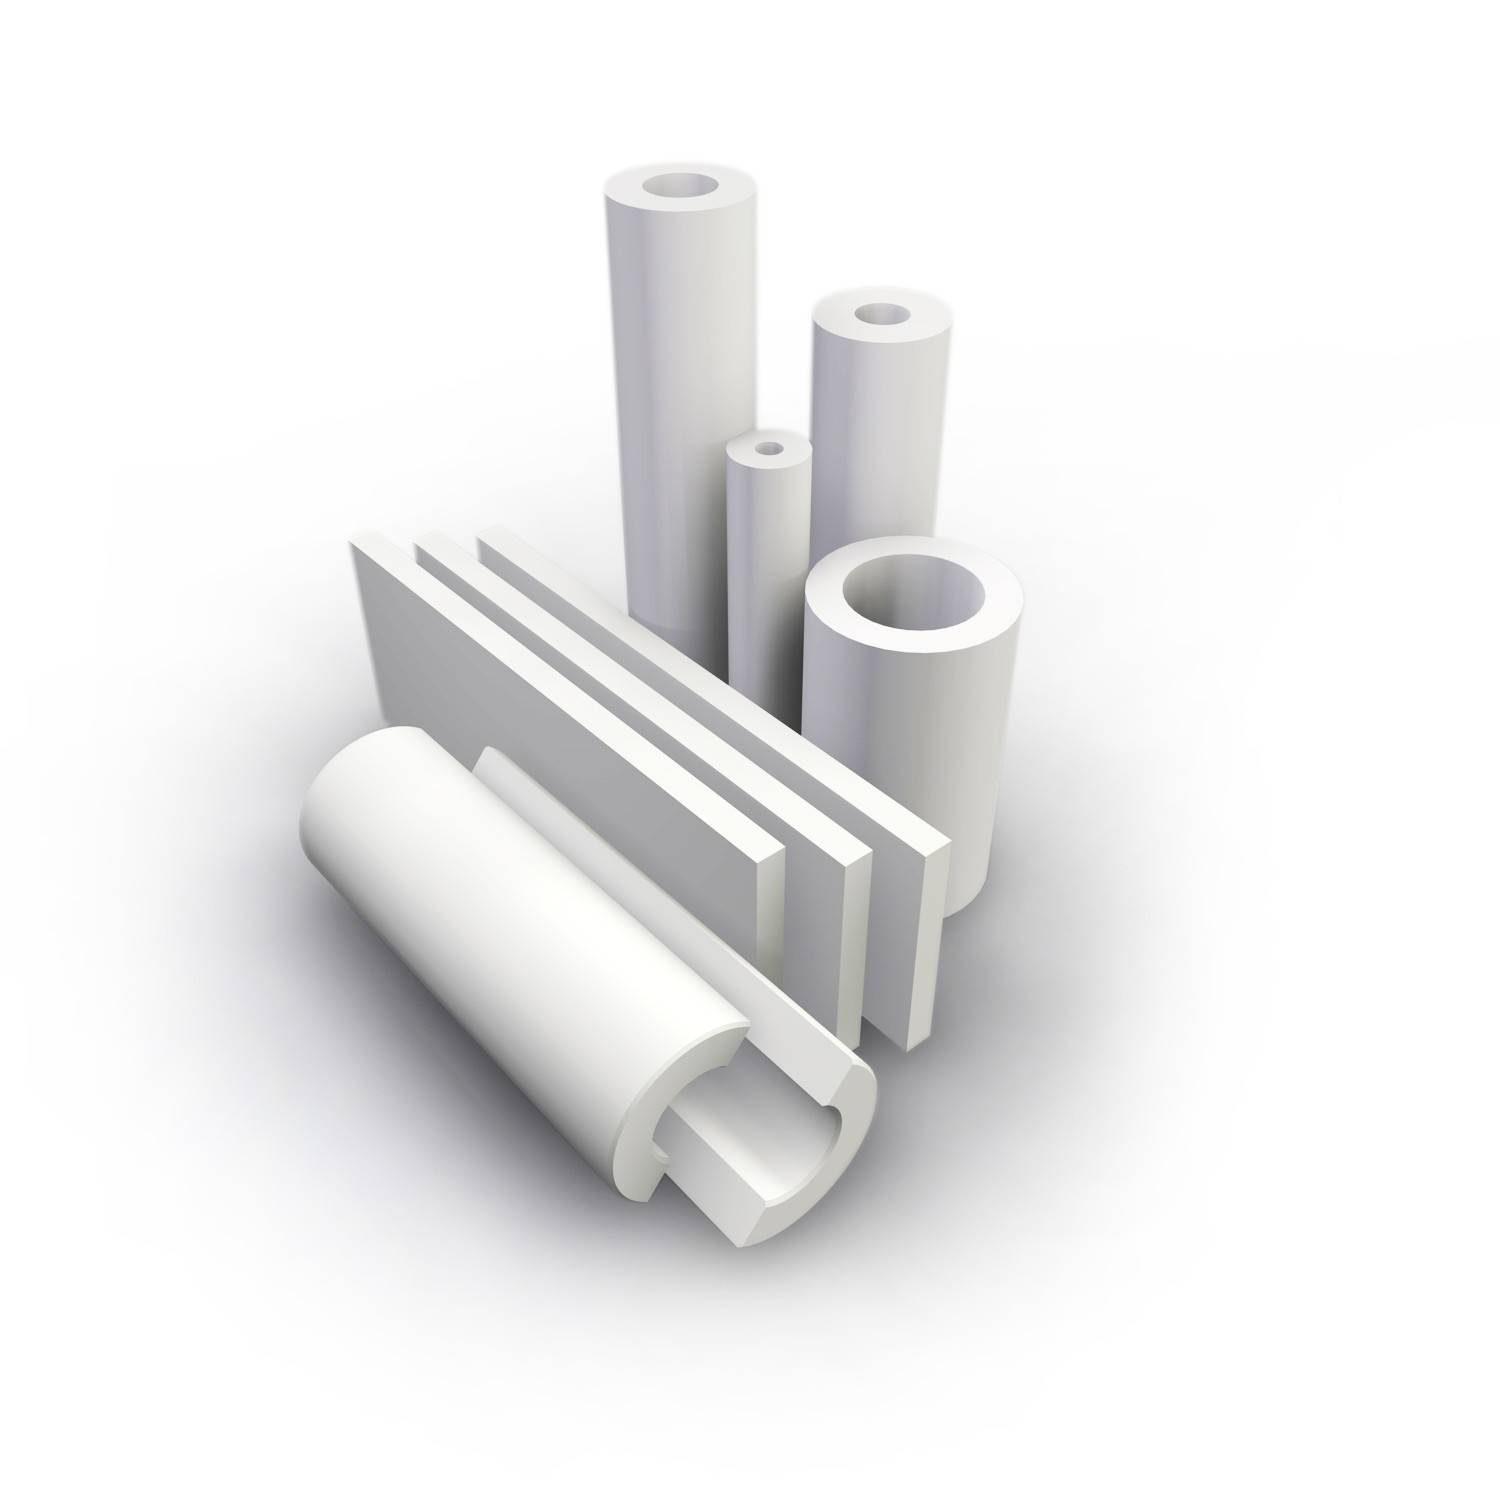 Calcium Silicate Pipe Insulation : Calcium silicate insulation materials zhejiang ask new